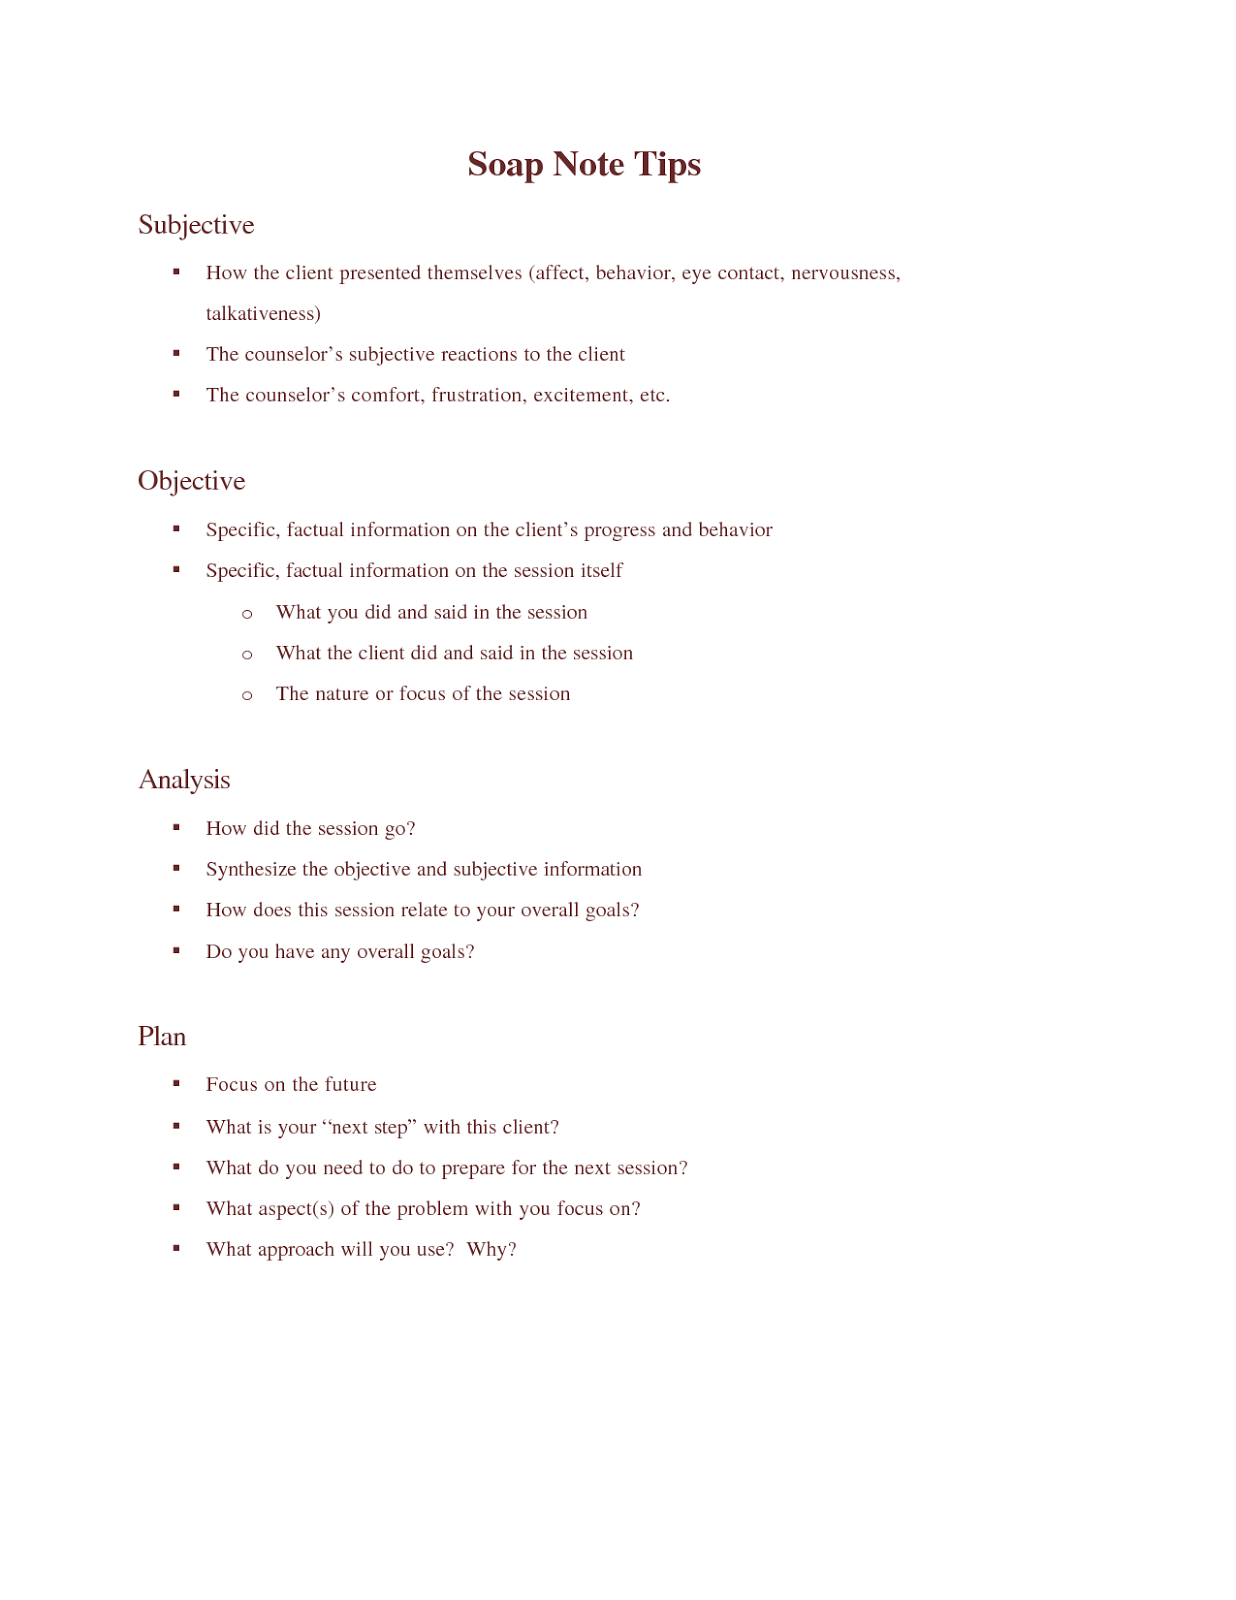 Free download Simple soap note templates